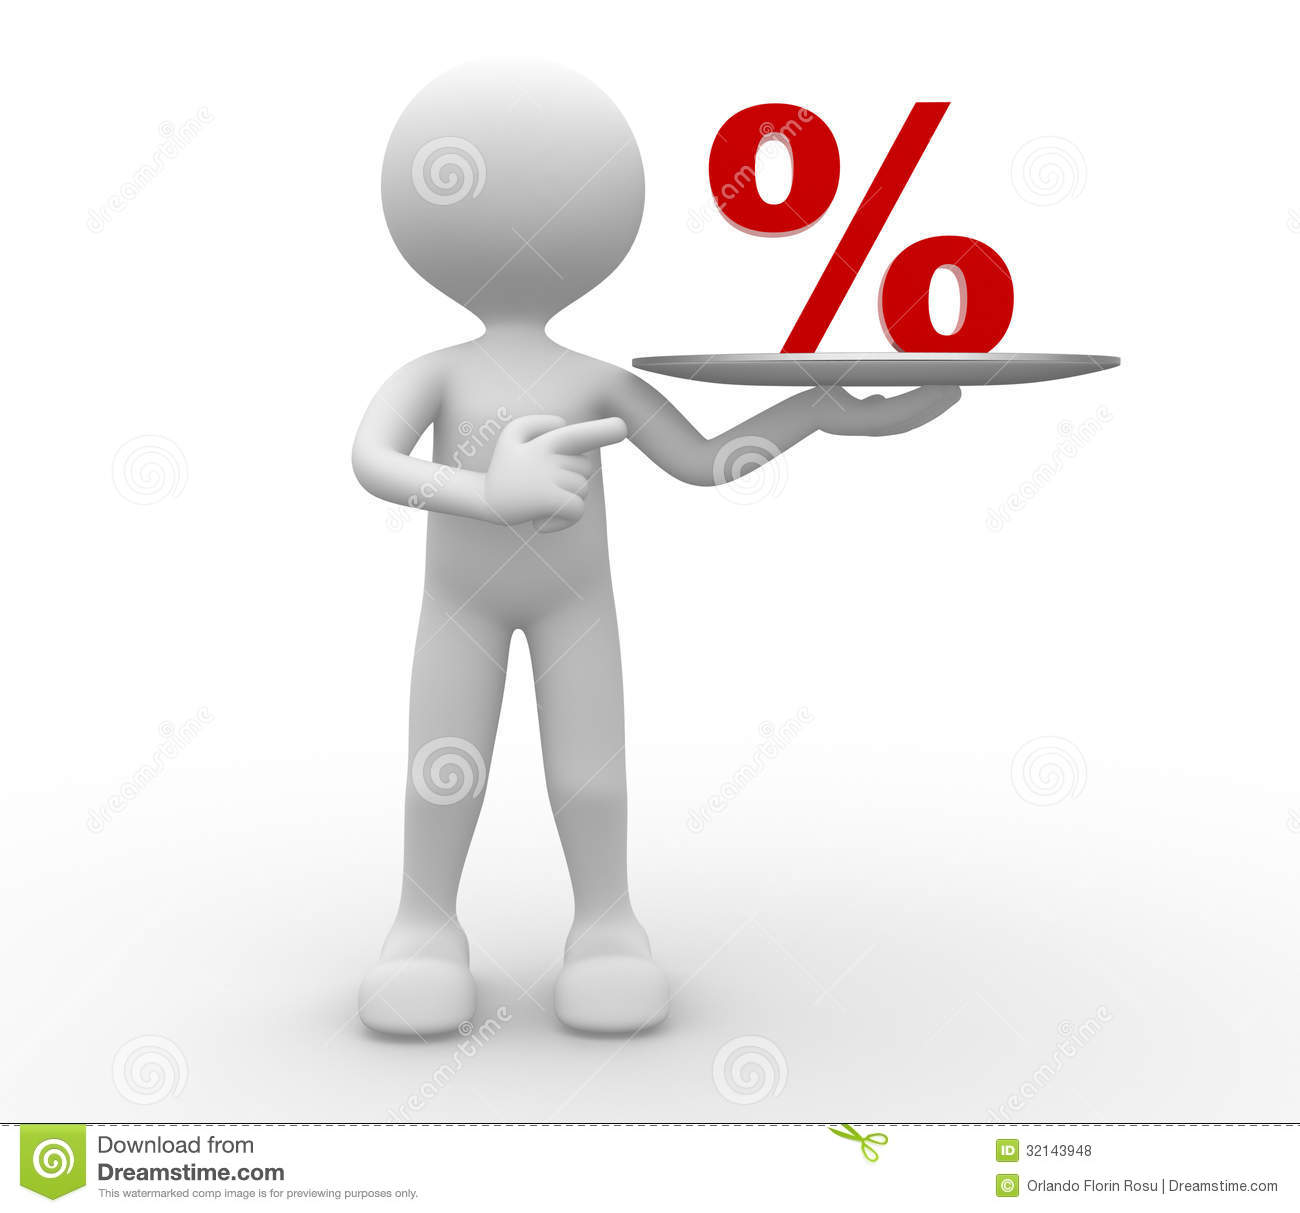 Percent of people in population with hitchhikers thumb